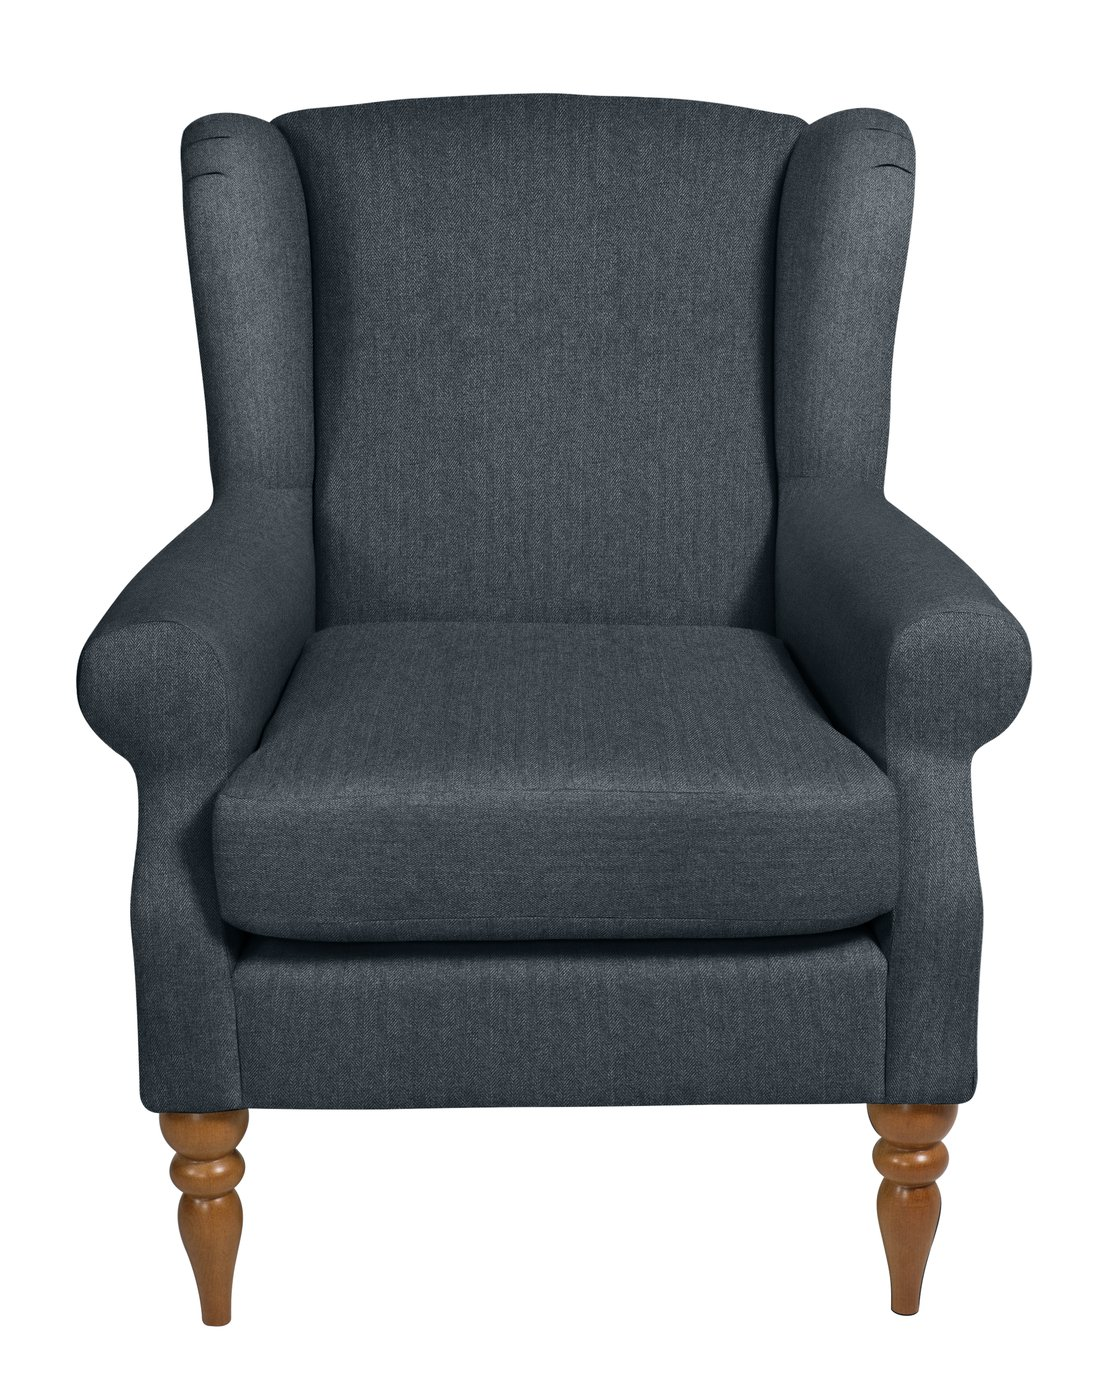 Argos Home Bude Fabric Wingback Chair - Blue